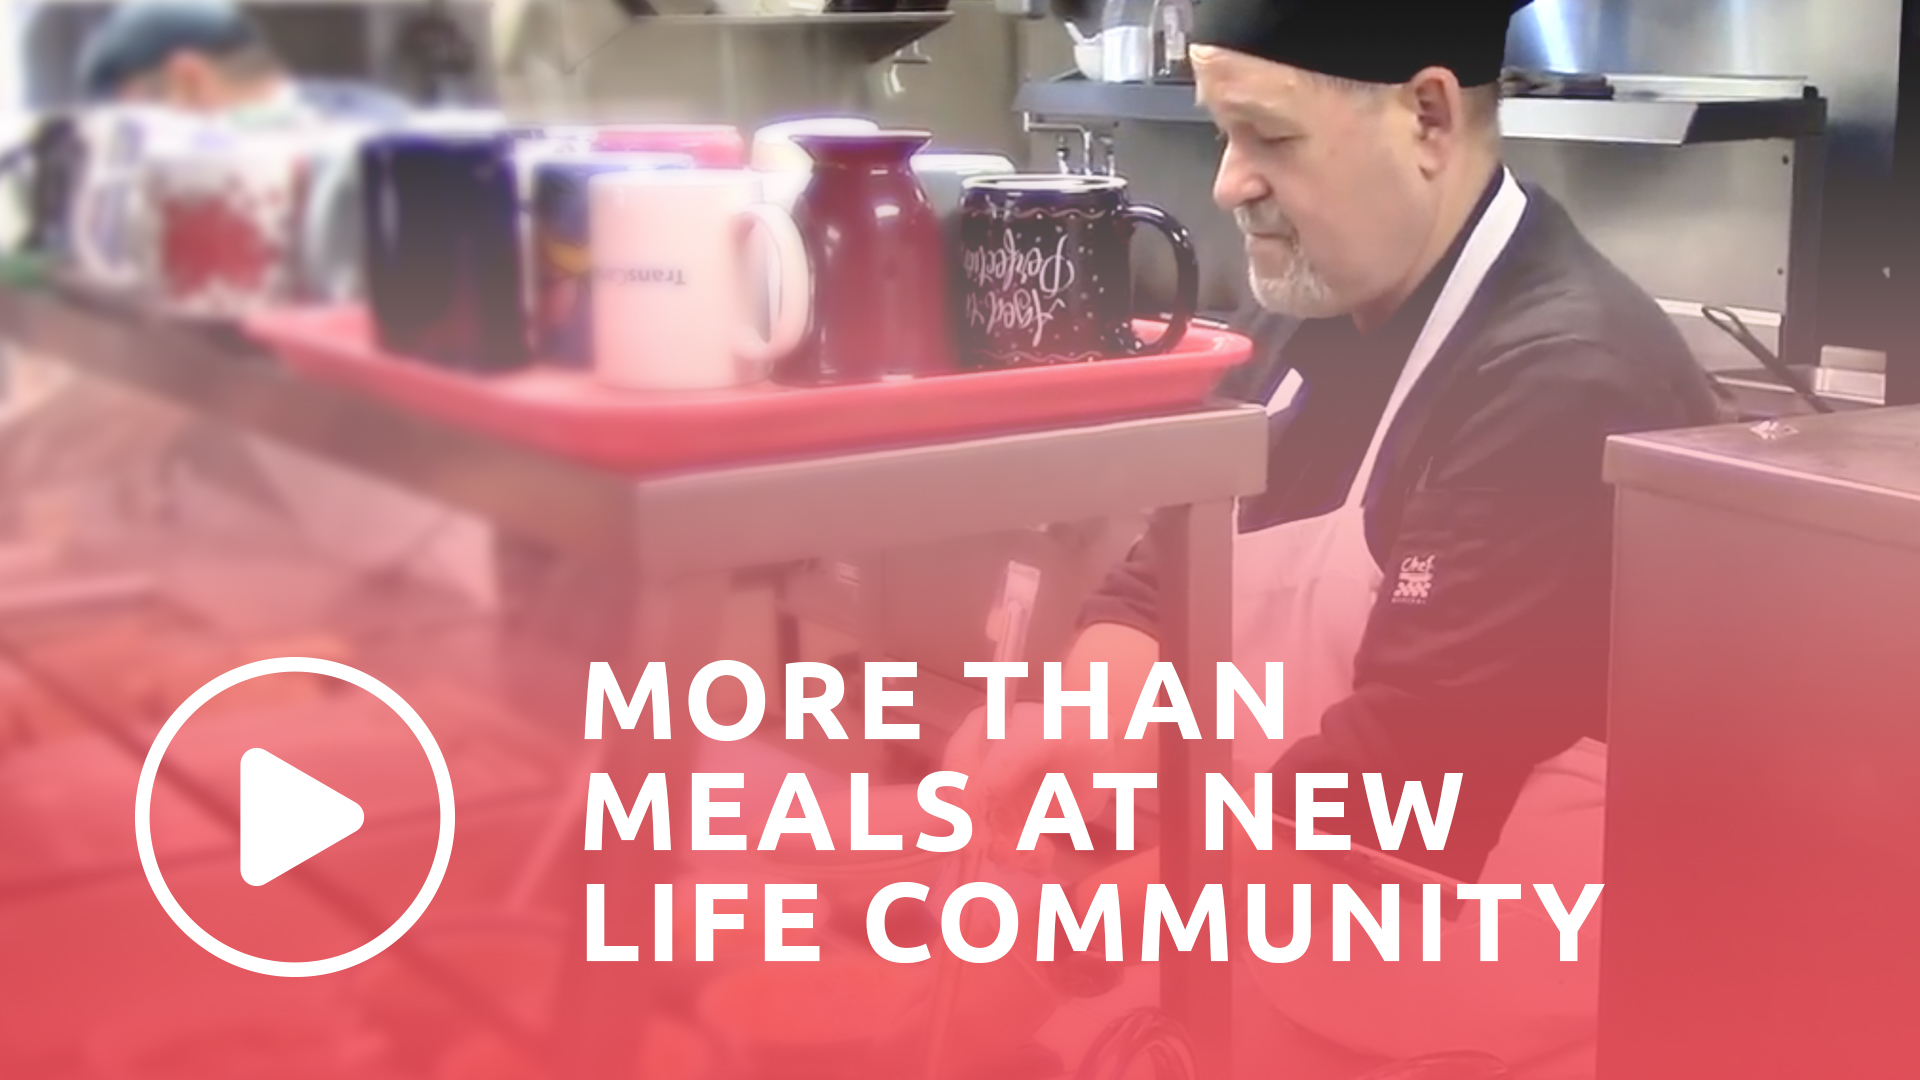 Watch video more than meals at new life community.